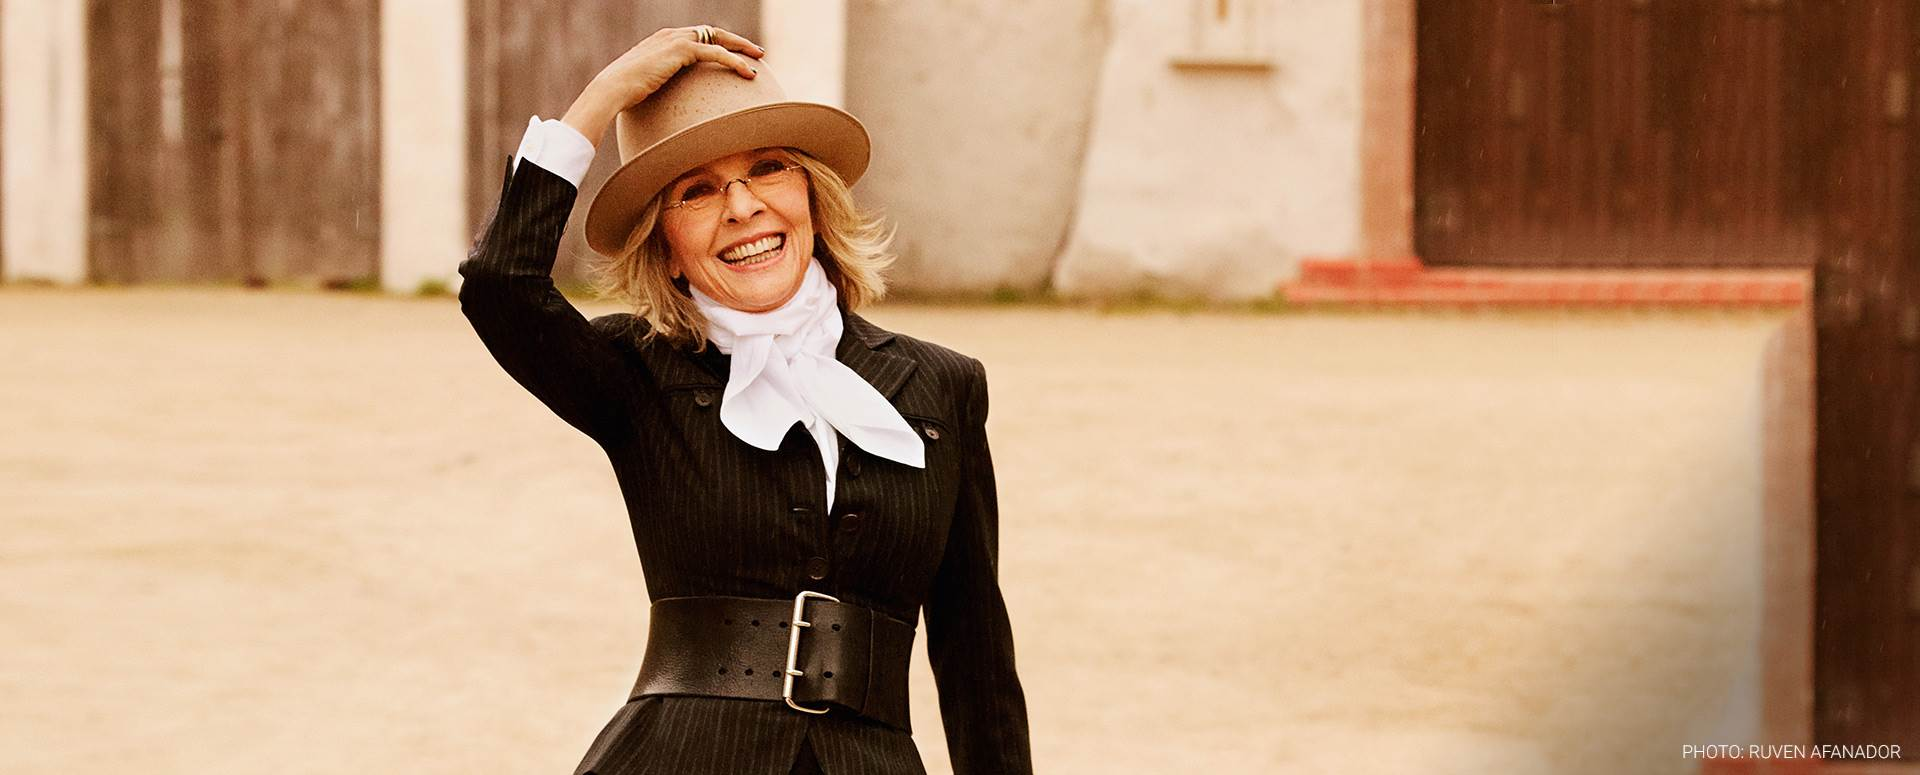 Book Diane Keaton for Speaking, Events and Appearances | APB